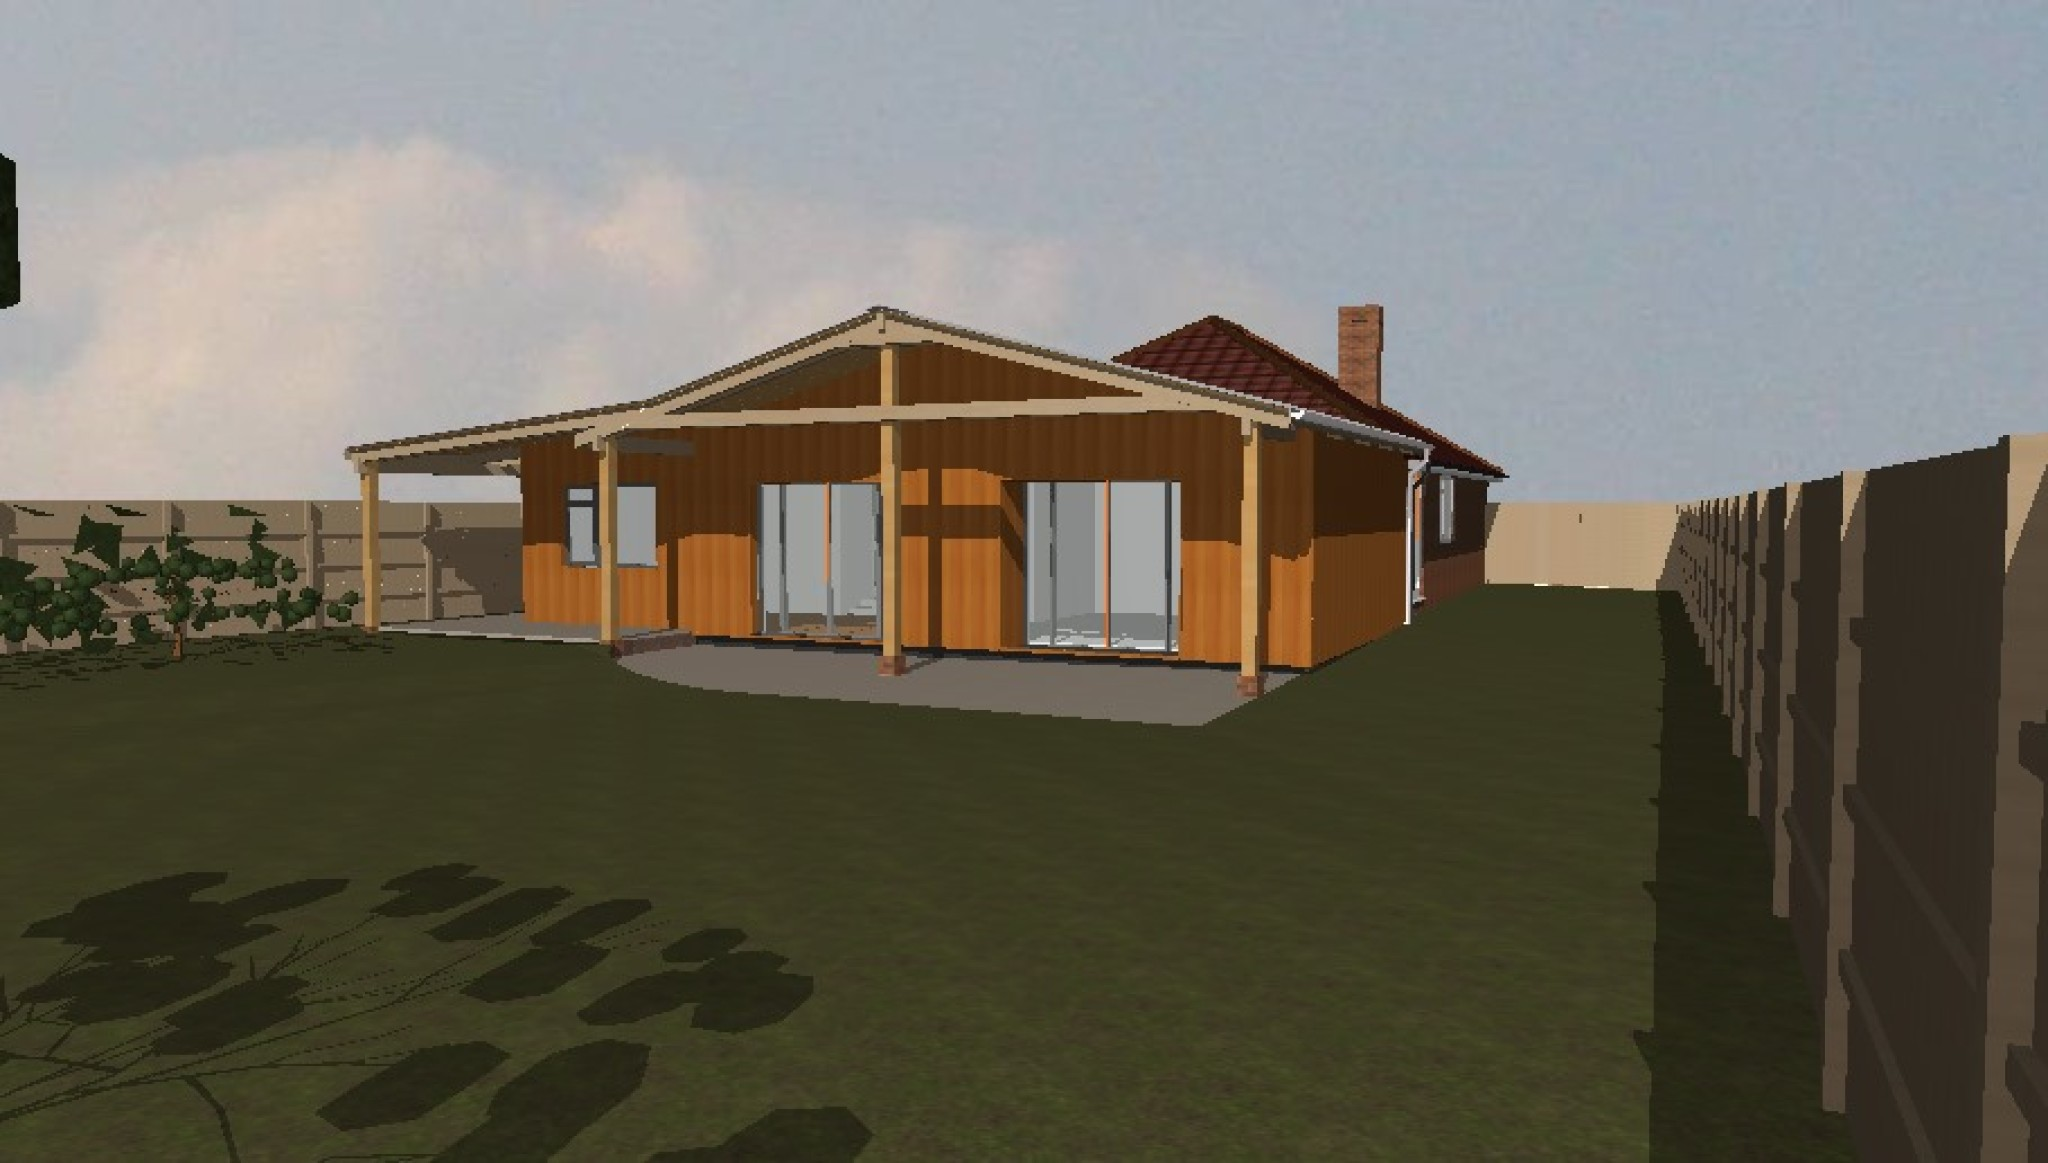 16-014-Ransom Rd-Woodbridge-Suffolk-Bungalow-Extension-Family Home-Contemporary-Traditional-3D CAD Mode.jpg